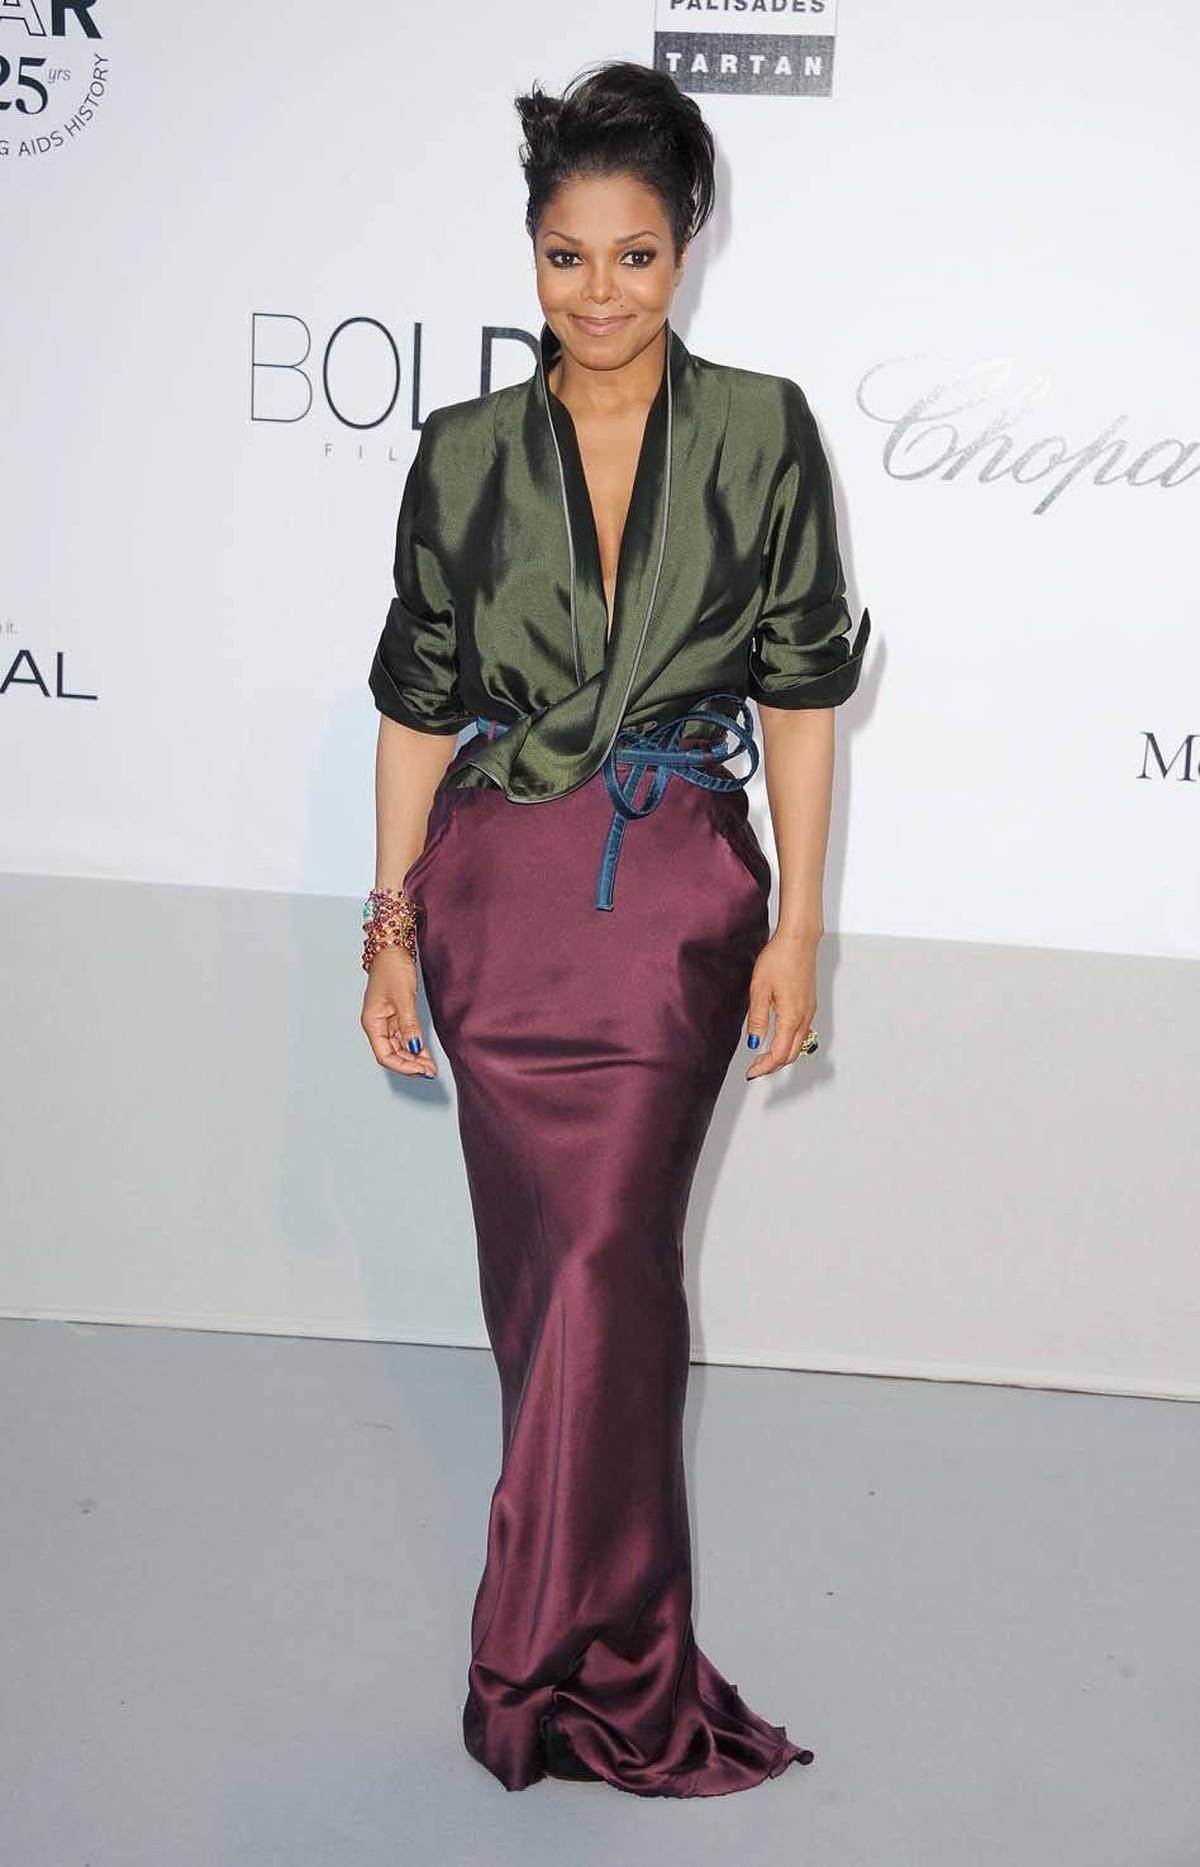 Janet Jackson attends amfAR's Cinema Against AIDS Gala at the Cannes Film Festival on Thursday.